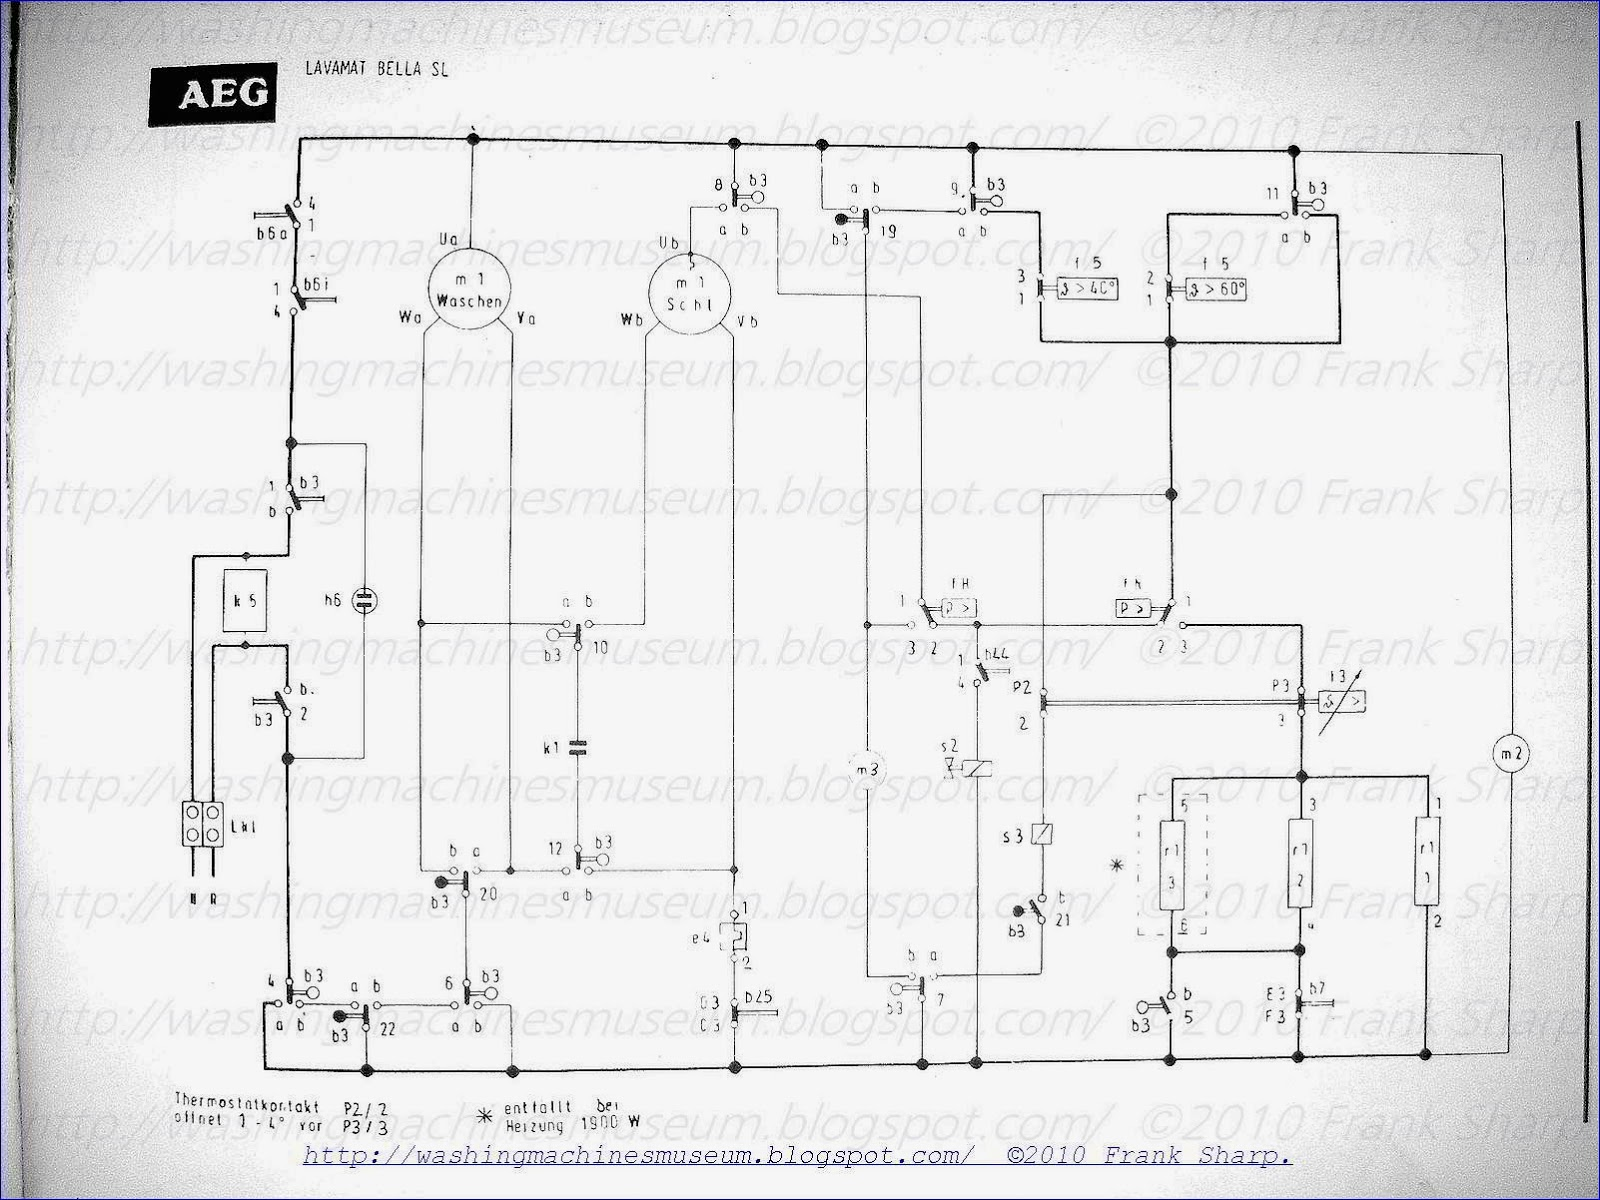 small resolution of sharp washing machine wiring diagram wiring diagram info aeg washing machine motor wiring diagram aeg washing machine wiring diagram